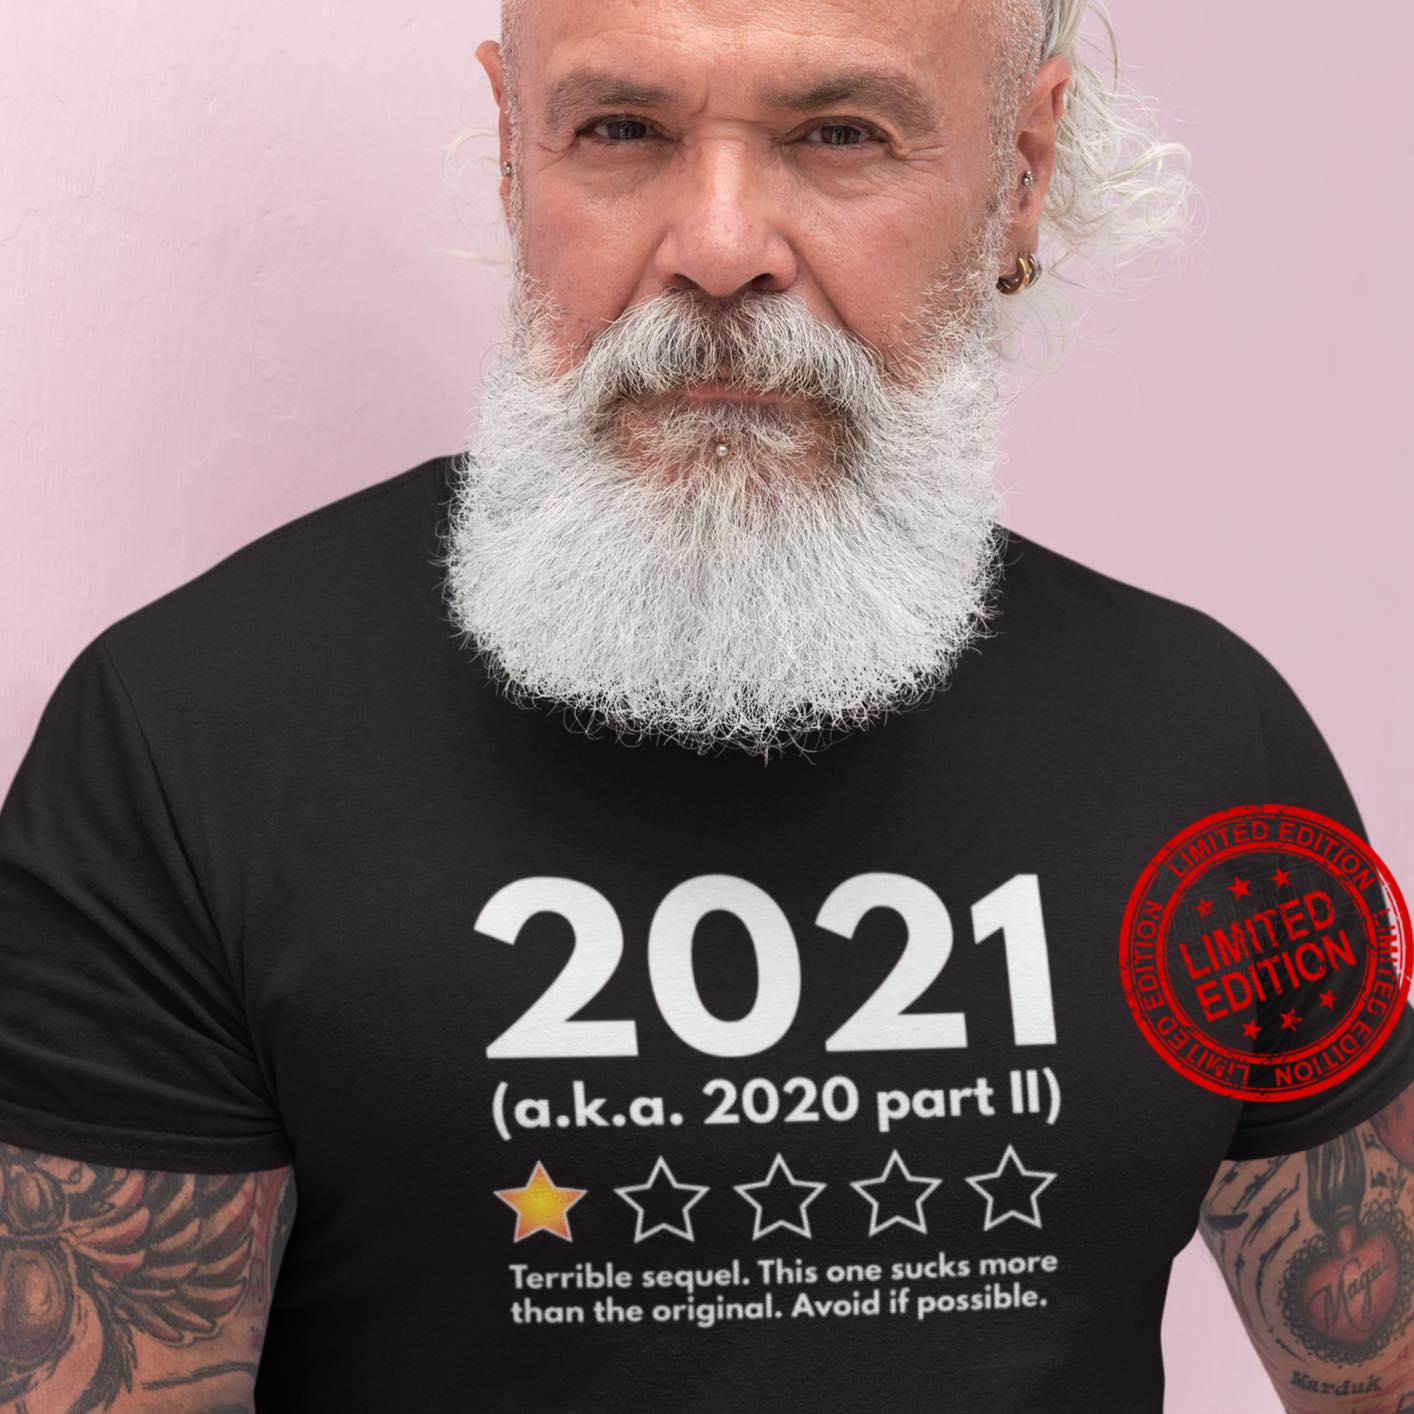 2021 A.k.a 2020 Part II Terrible Sequel This One Sucks More Than The Original Avoid If Possible Shirt